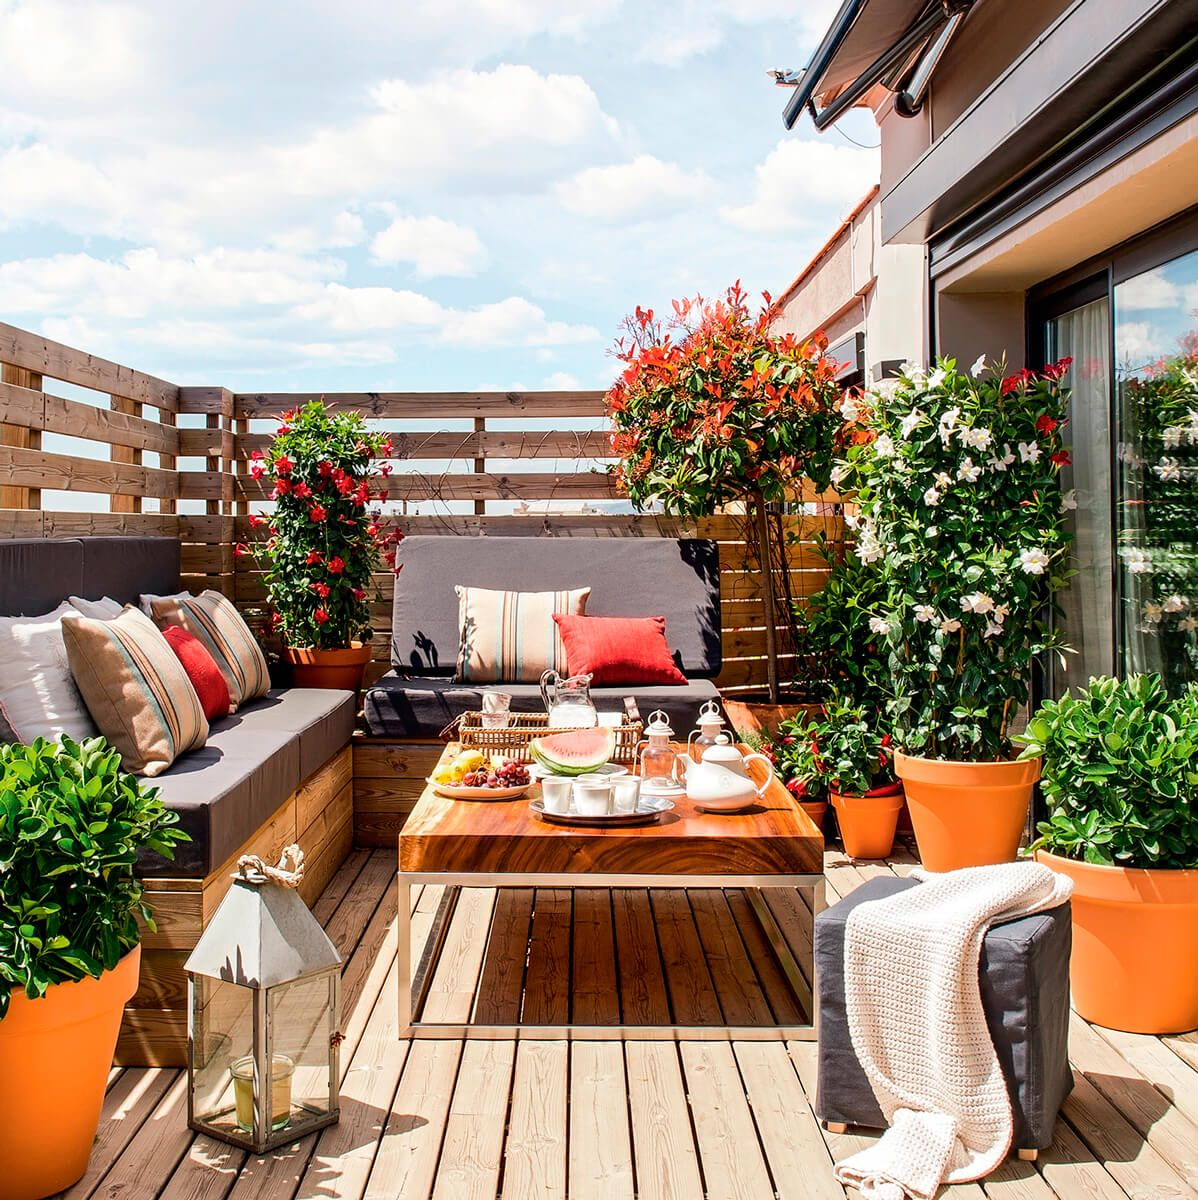 10 ideas para decorar terrazas y balcones balcones